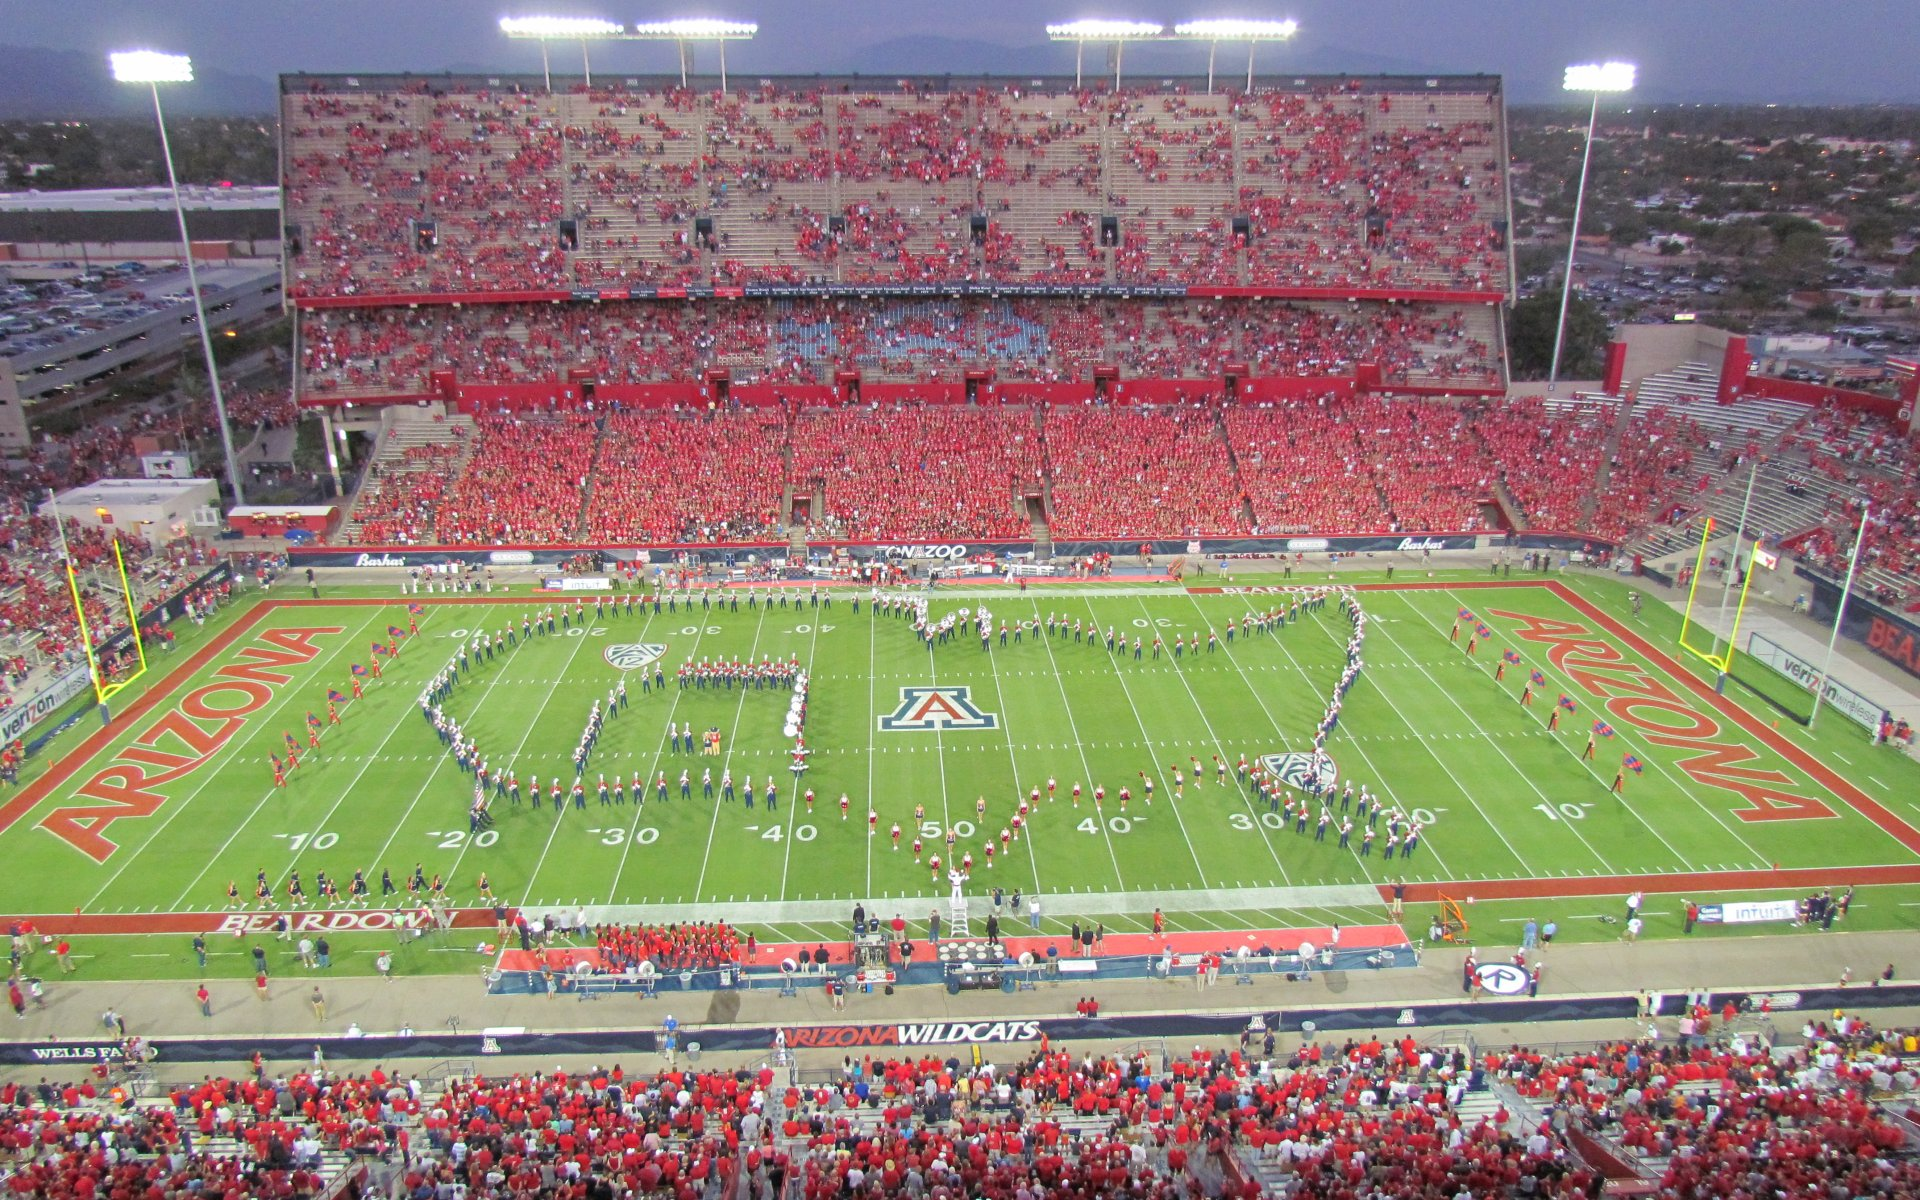 http://fightmusic.com/wallpapers/pac12/PAC-12_Arizona__Arizona_Stadium__1920x1200.jpg